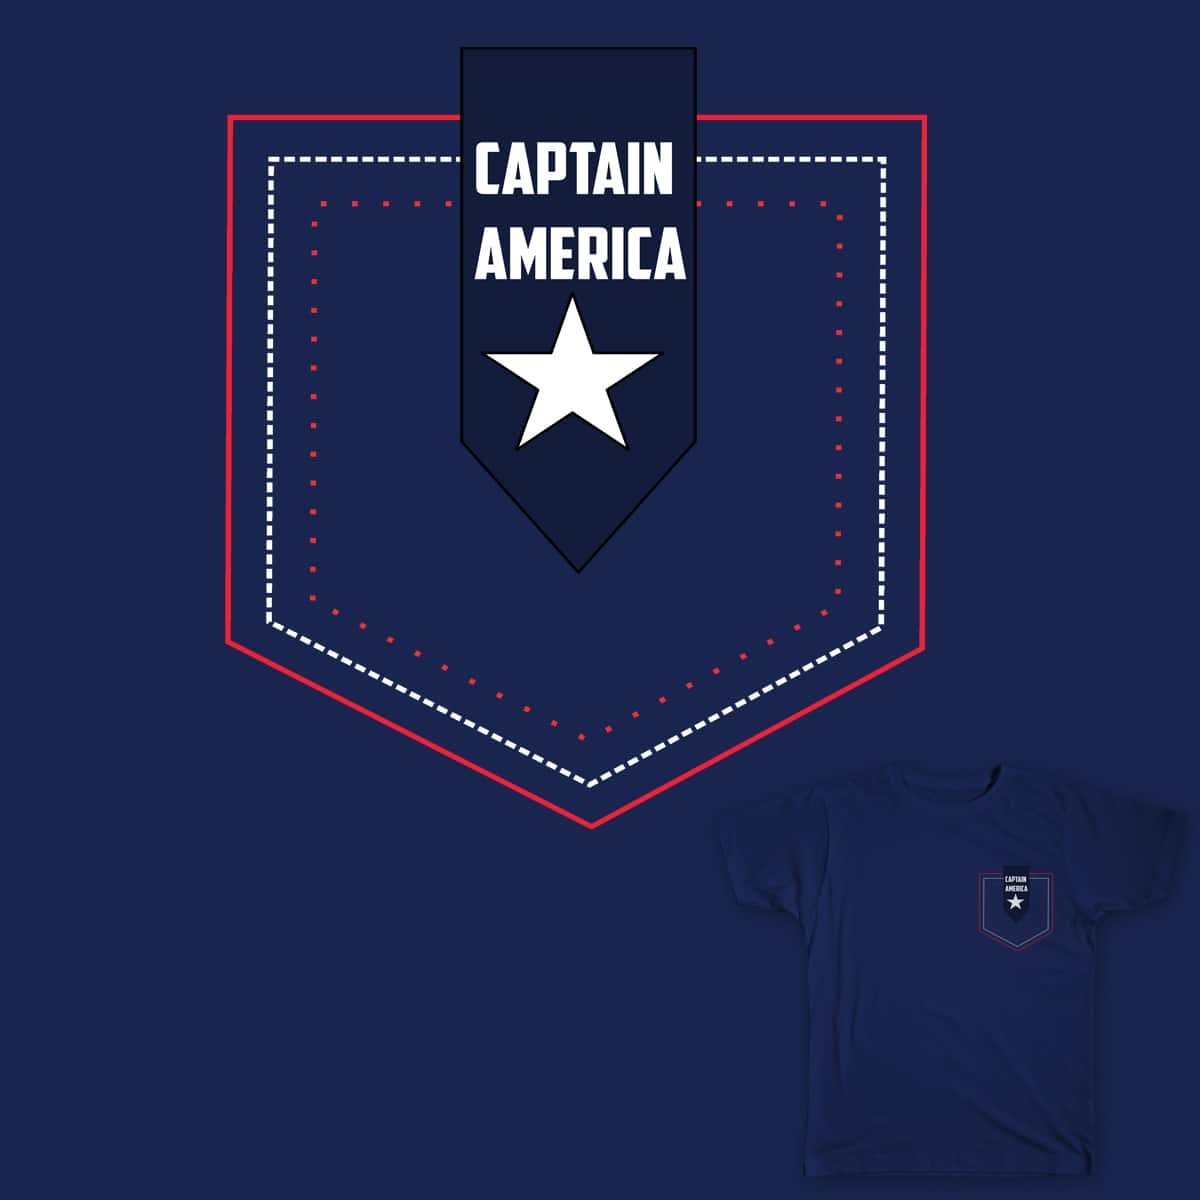 American Pocket by Muzaffar Keen on Threadless